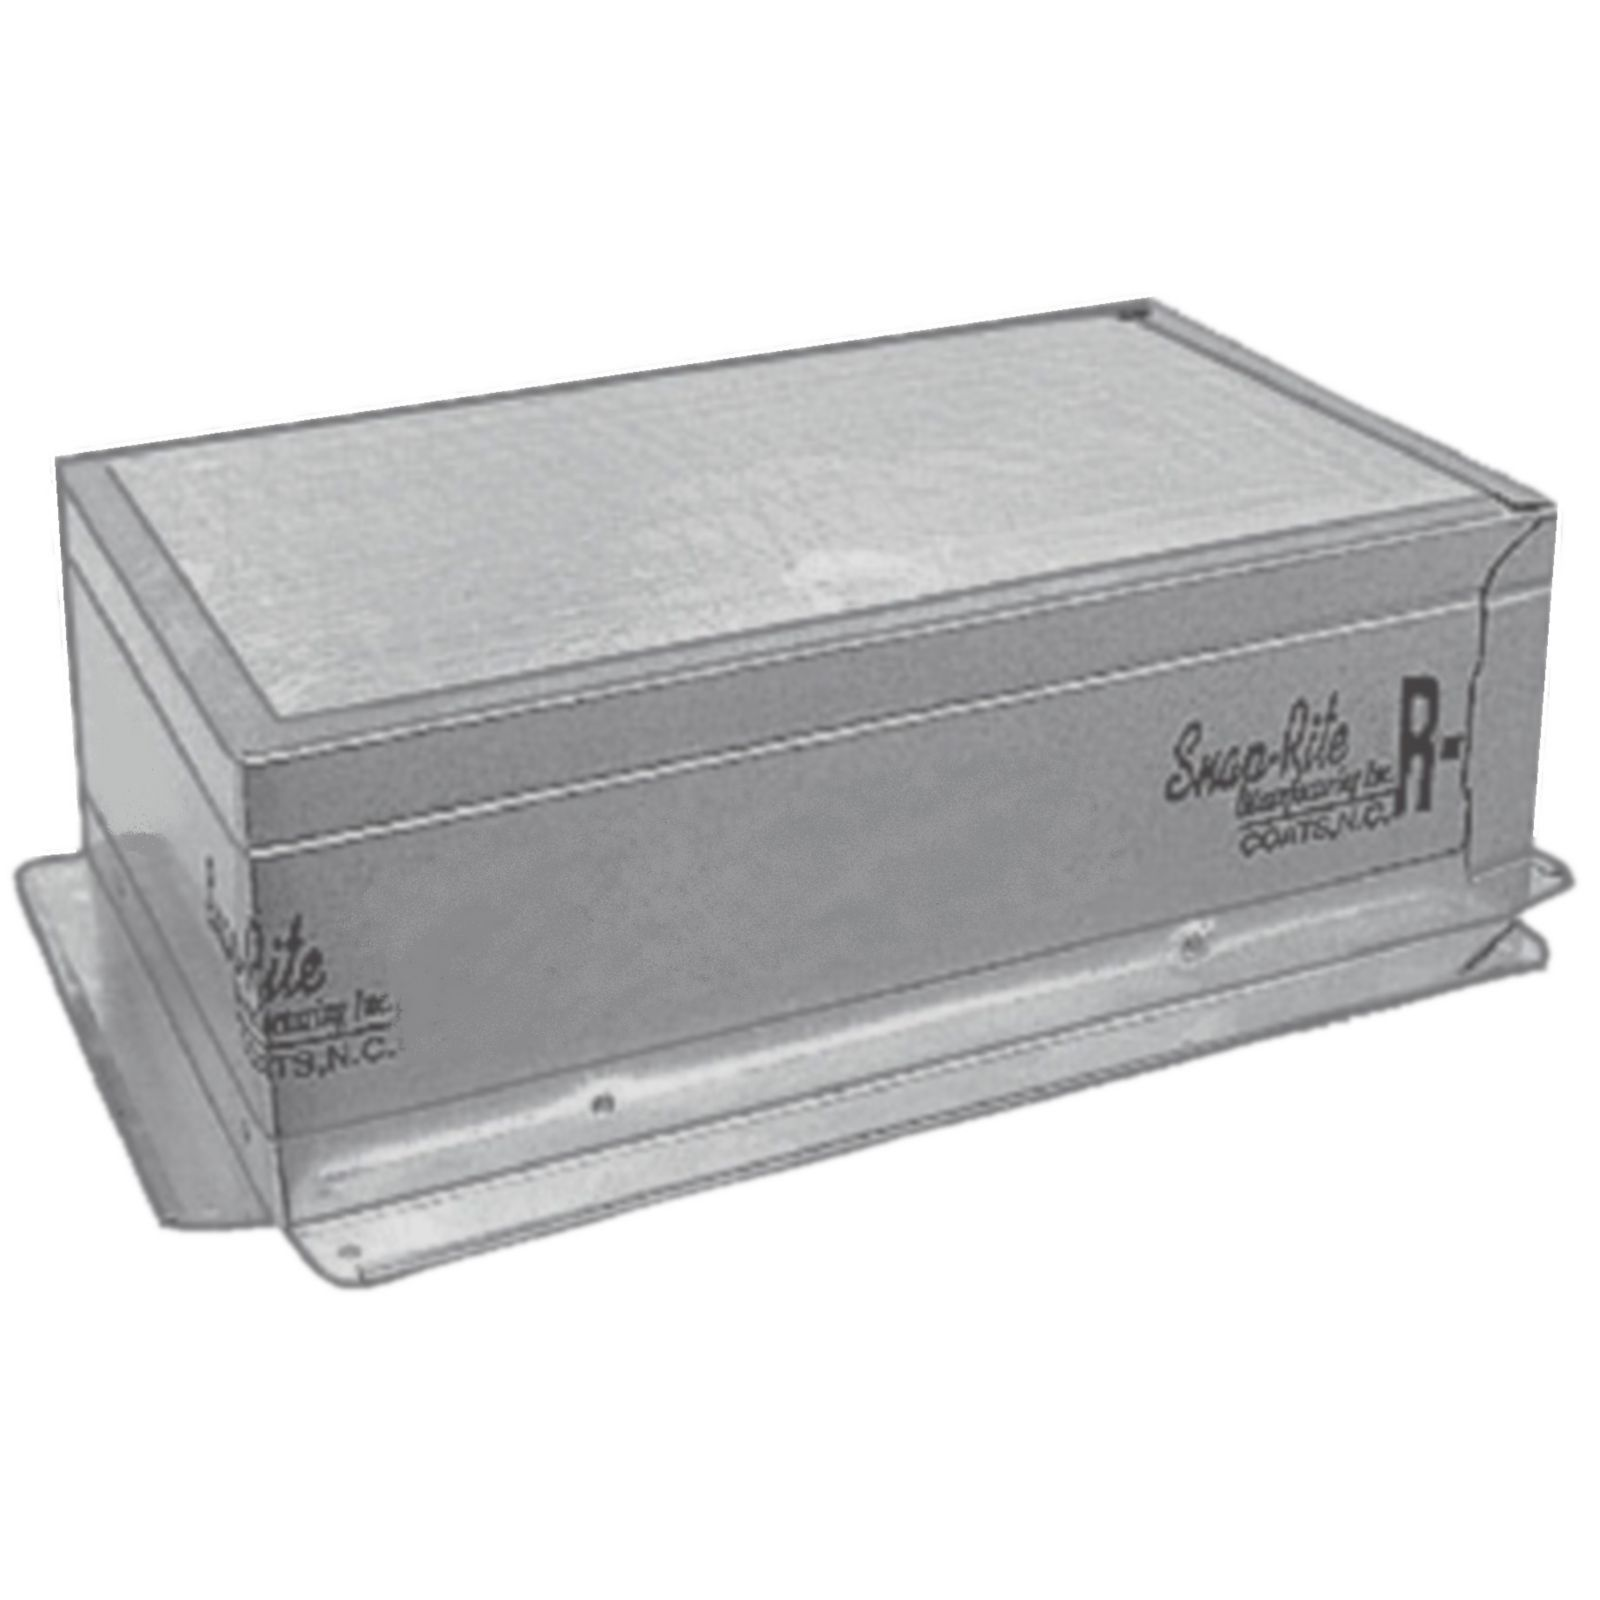 "Snap-Rite 14X08-3800F - Foil Top Insulated Register Box With Flange, 14"" x 08"" - R6"